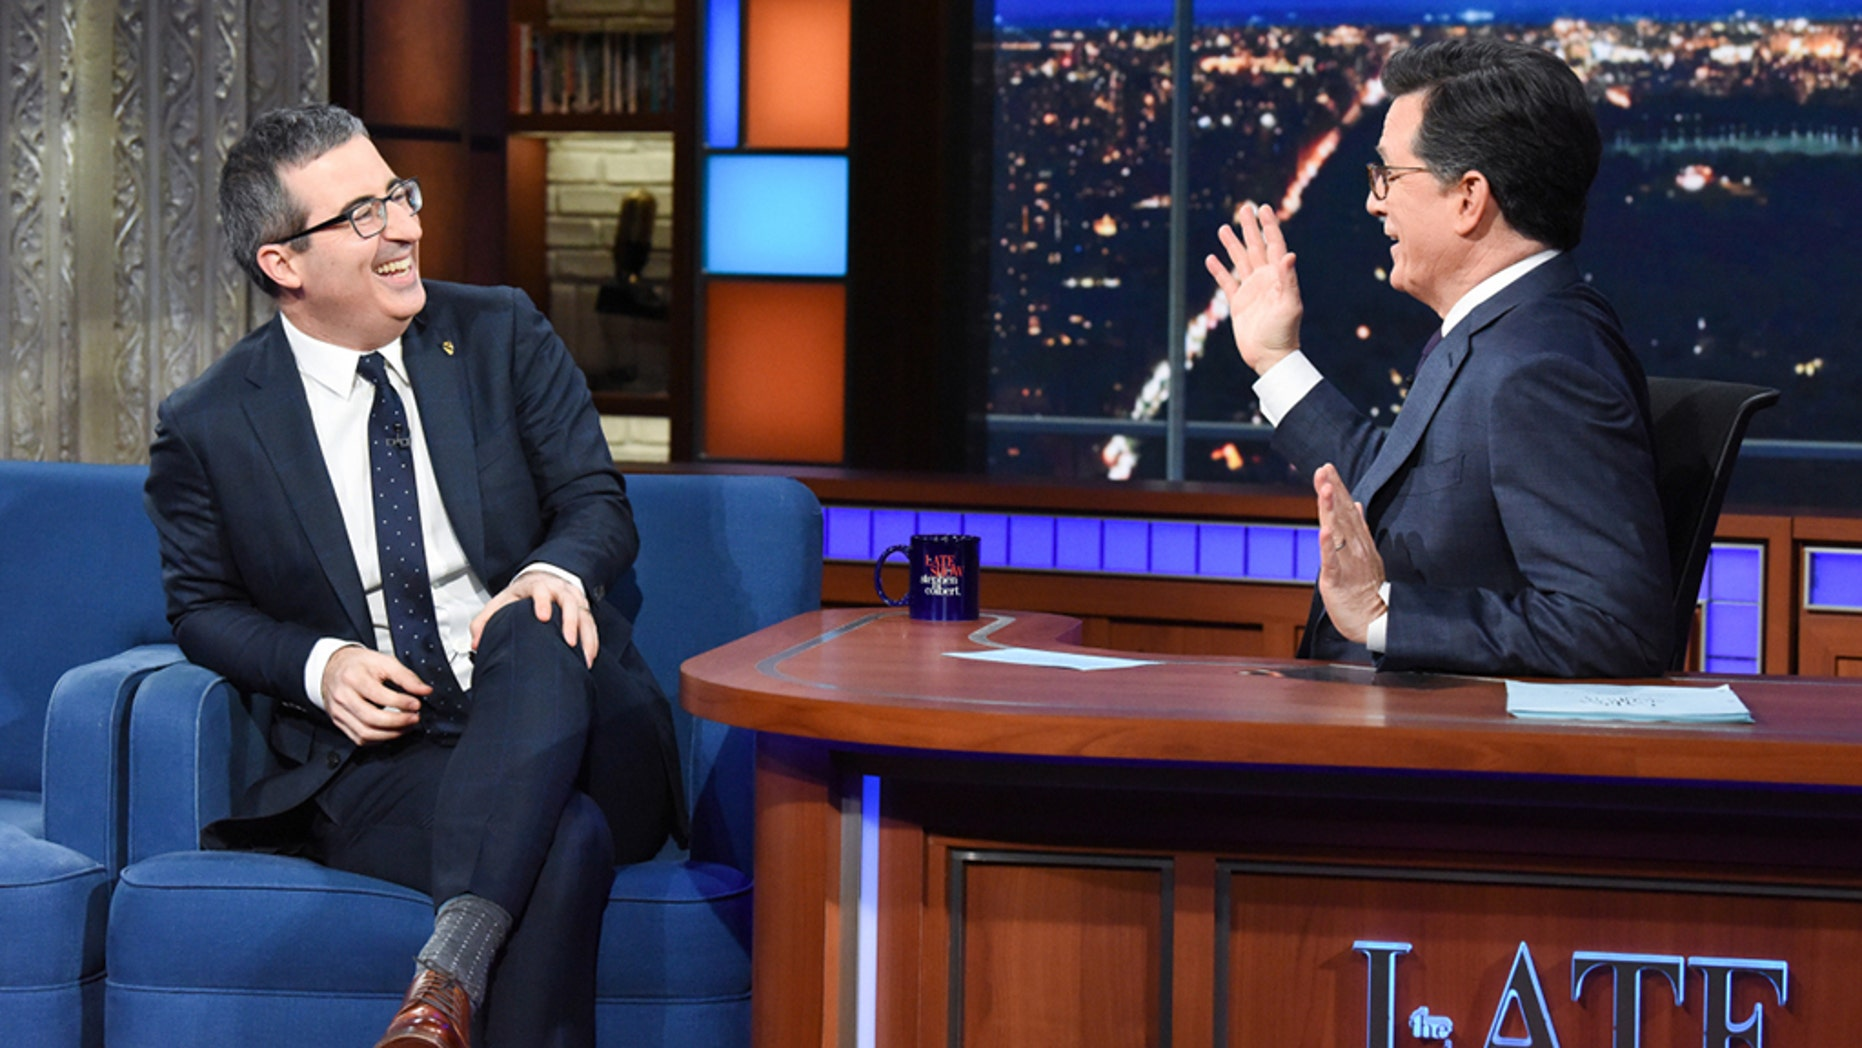 "The late show with Stephen Colbert and guest John Oliver during the show on February 1<div class=""e3lan e3lan-in-post1""><script async src=""//pagead2.googlesyndication.com/pagead/js/adsbygoogle.js""></script>